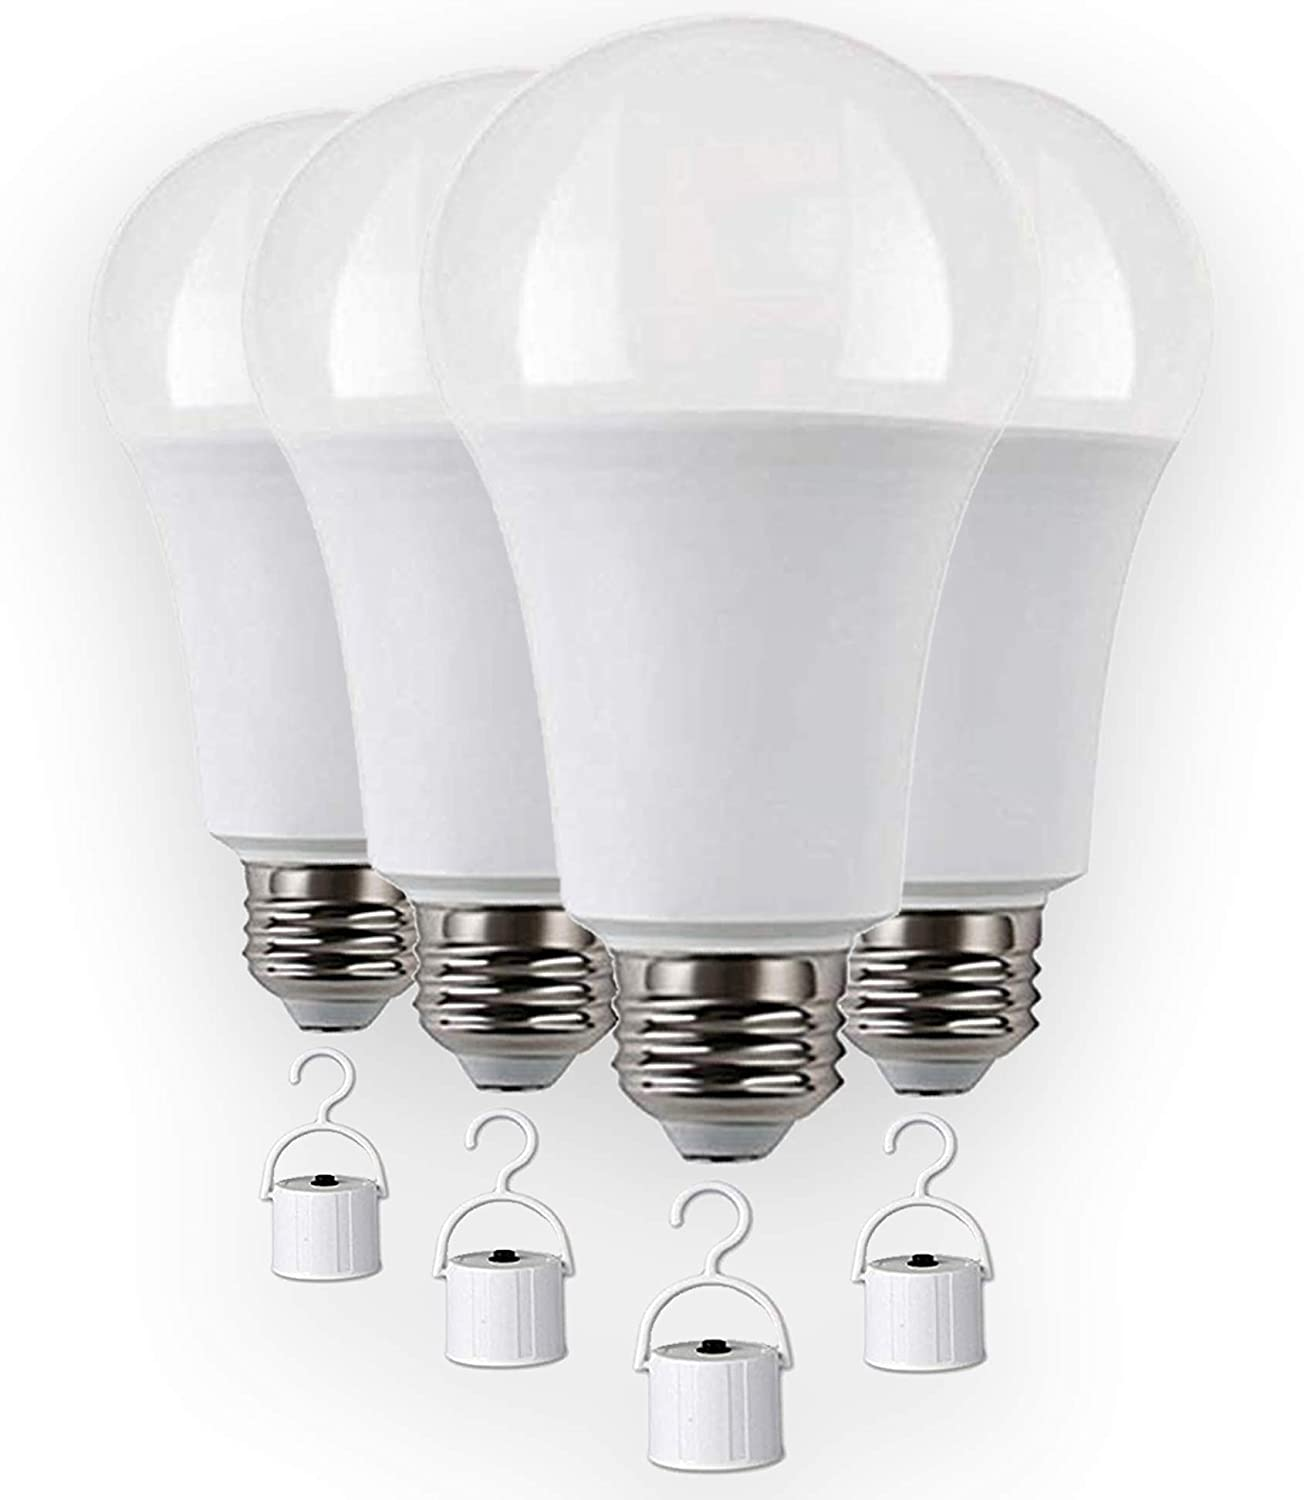 Rechargeable LED light bulbs with Battery backup, Emergency LED Bulb, Pack of 4, LED 60 Watt bulb.